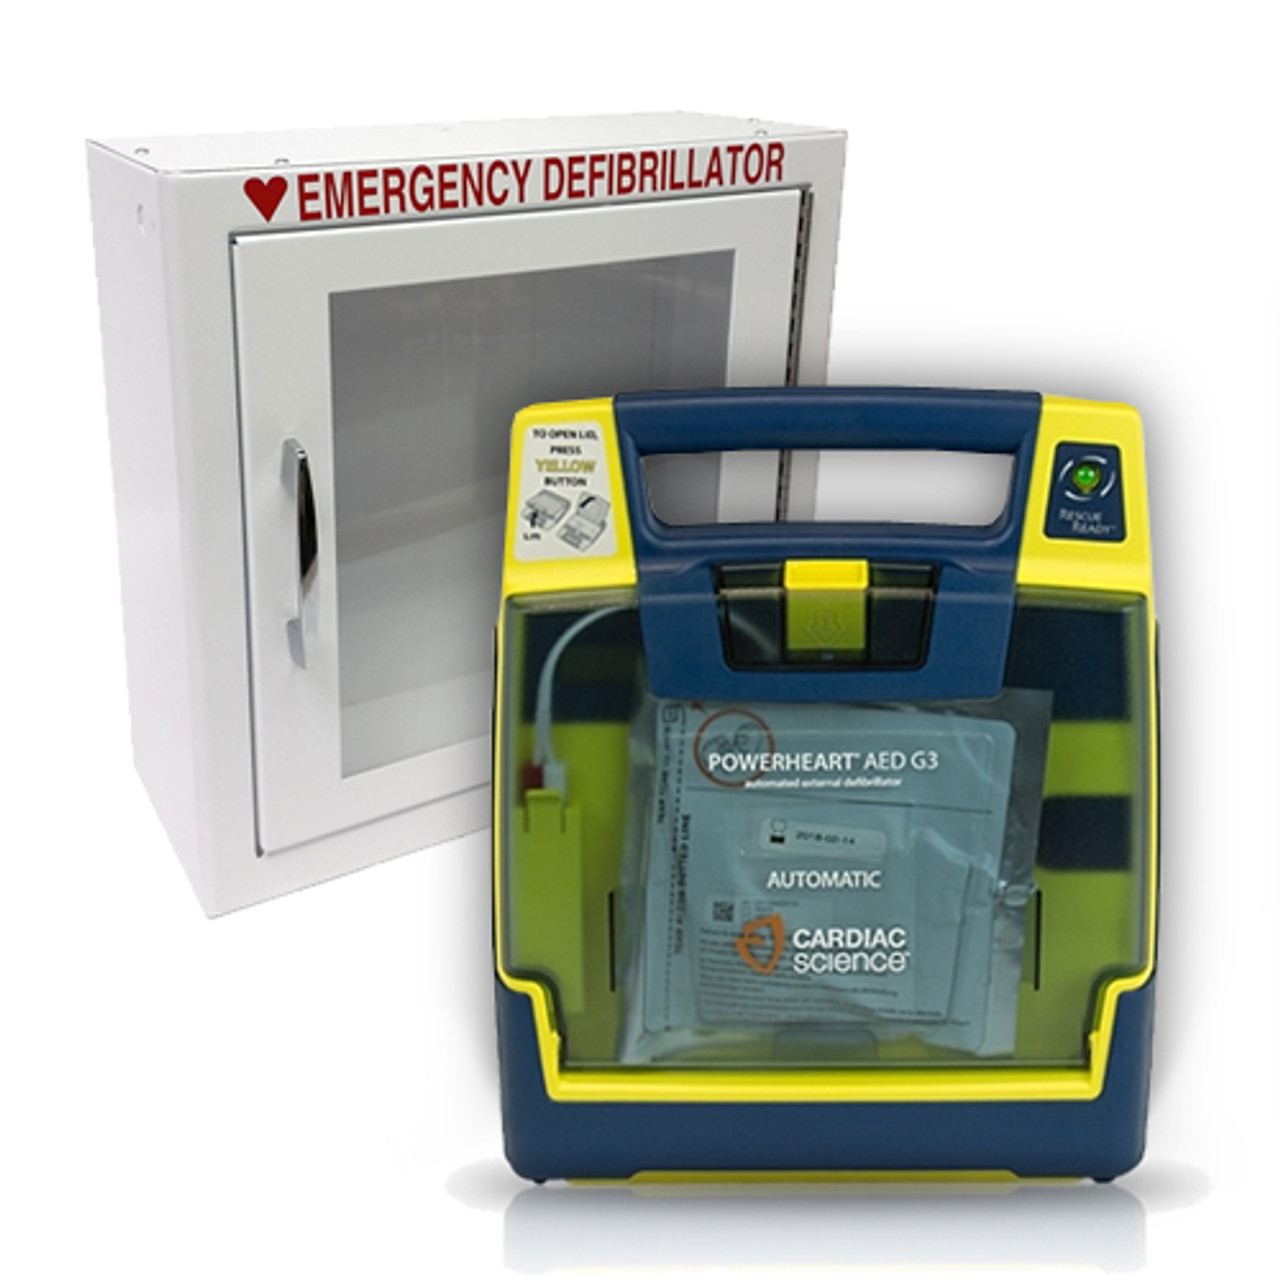 Cardiac Science Powerheart AED G3 Plus - includes standard cabinet